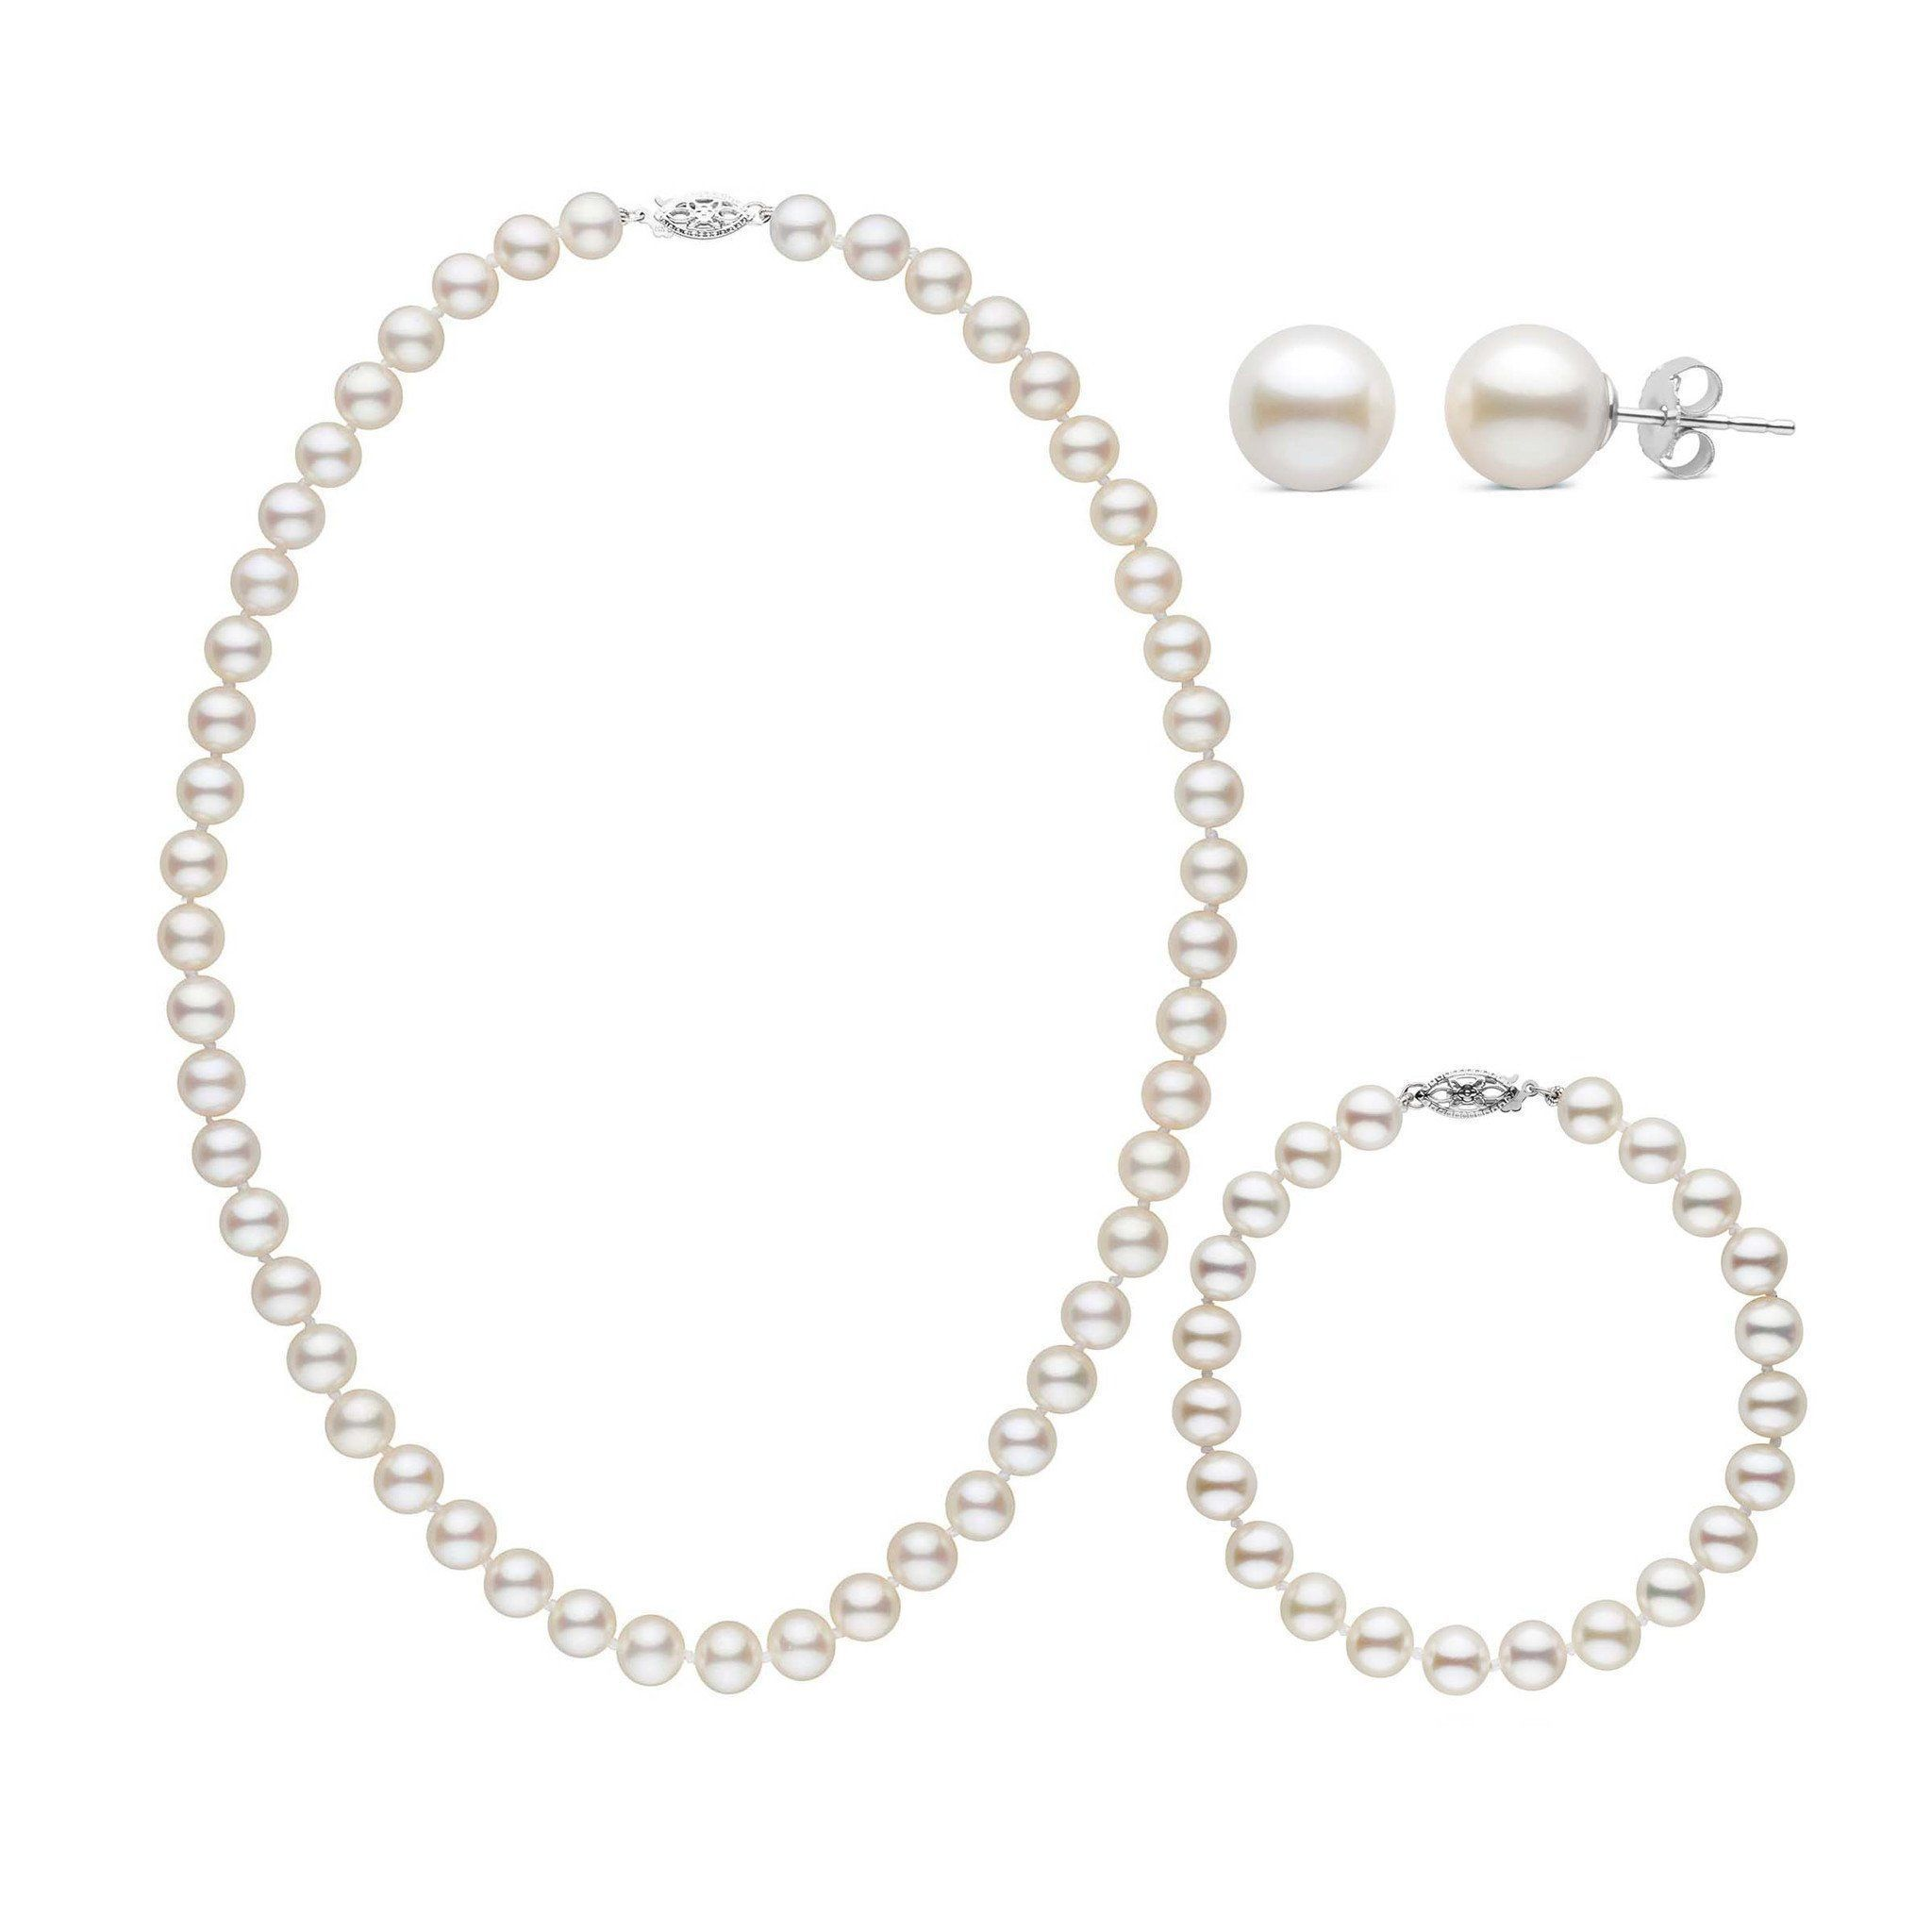 16 Inch 3 Piece Set of 7.5-8.0 mm AAA White Freshwater Pearls